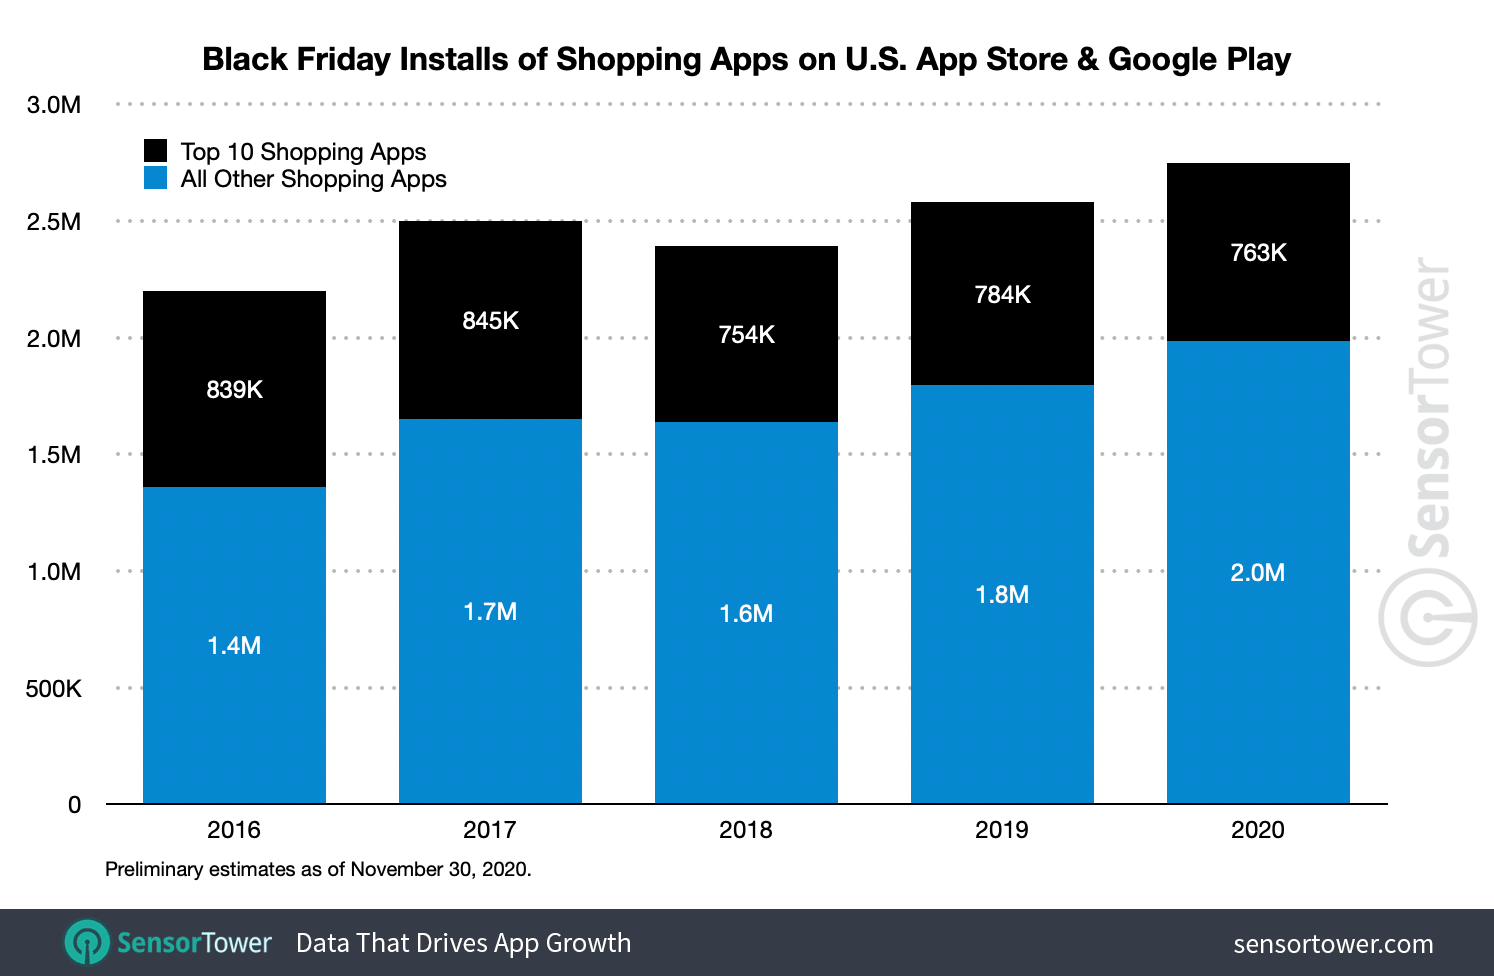 US shopping app downloads on Black Friday reached a record 2.8M installs